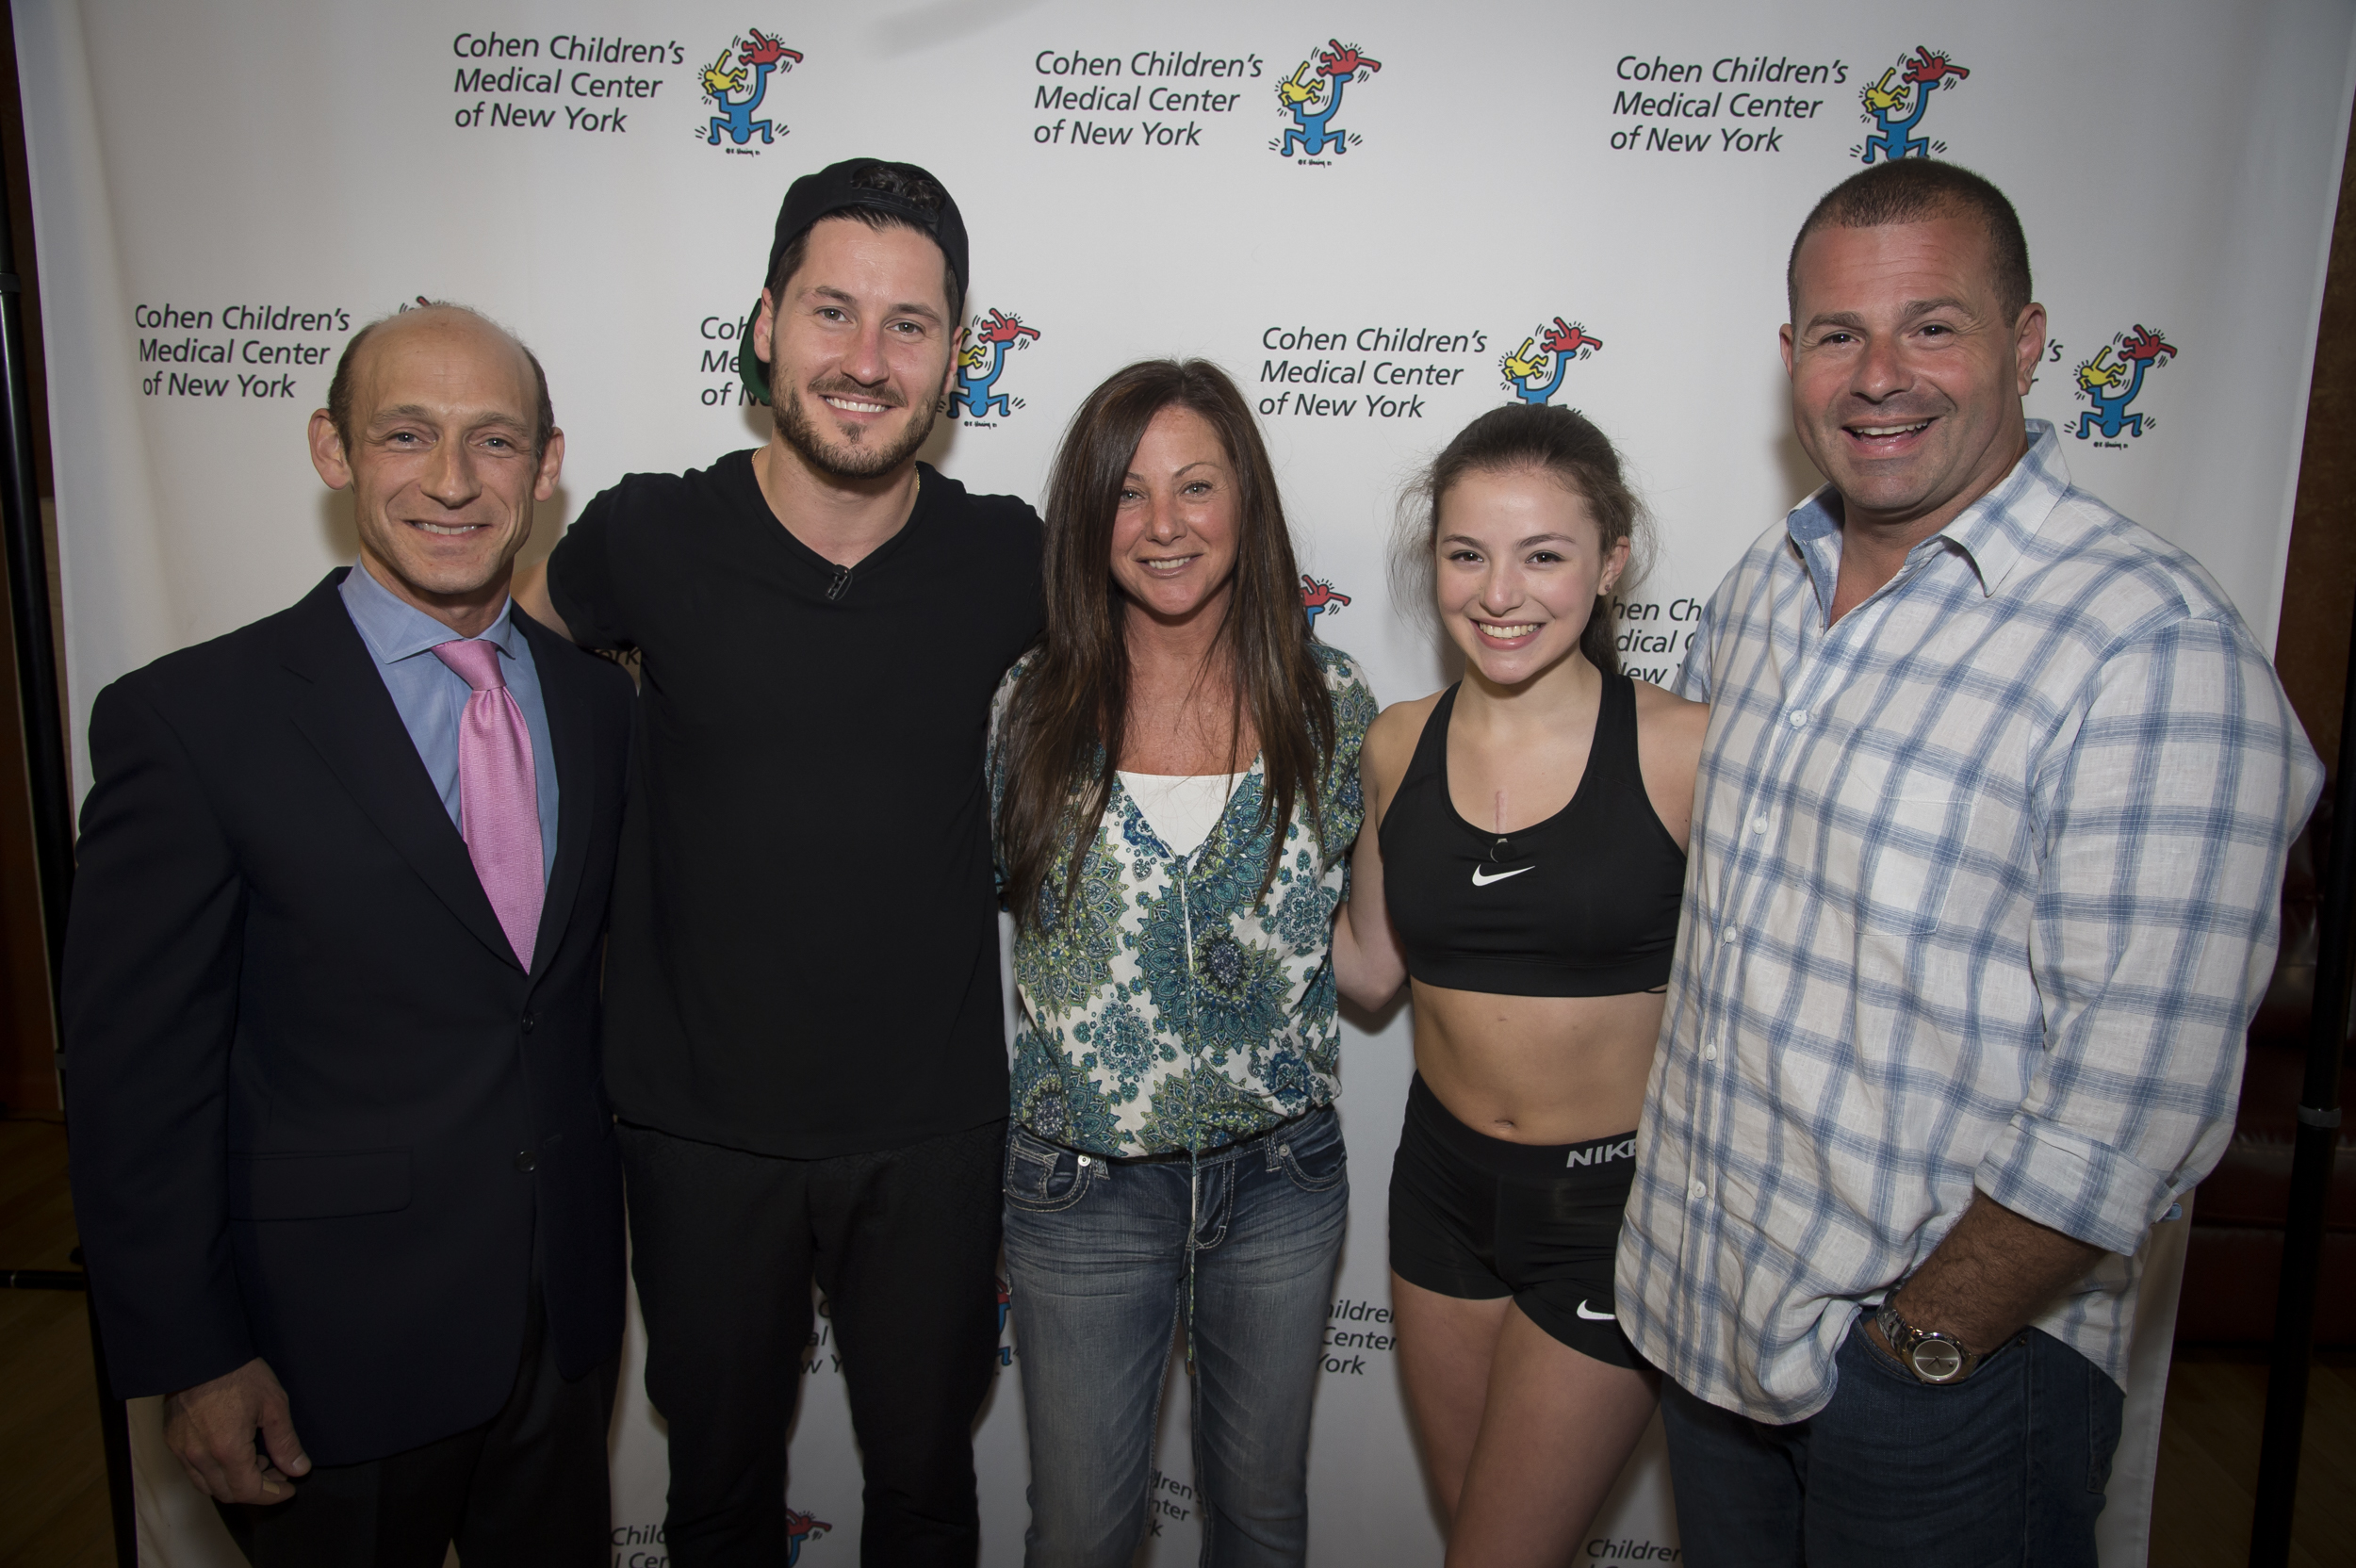 National Dance Champion and open-heart surgery survior Gianna Schupler stands between her parents, Maria and Phil, with the heart surgeon who saved her, Dr. David Meyer, on the left and her dance idol, Val Chmerkovskiy, on the right.